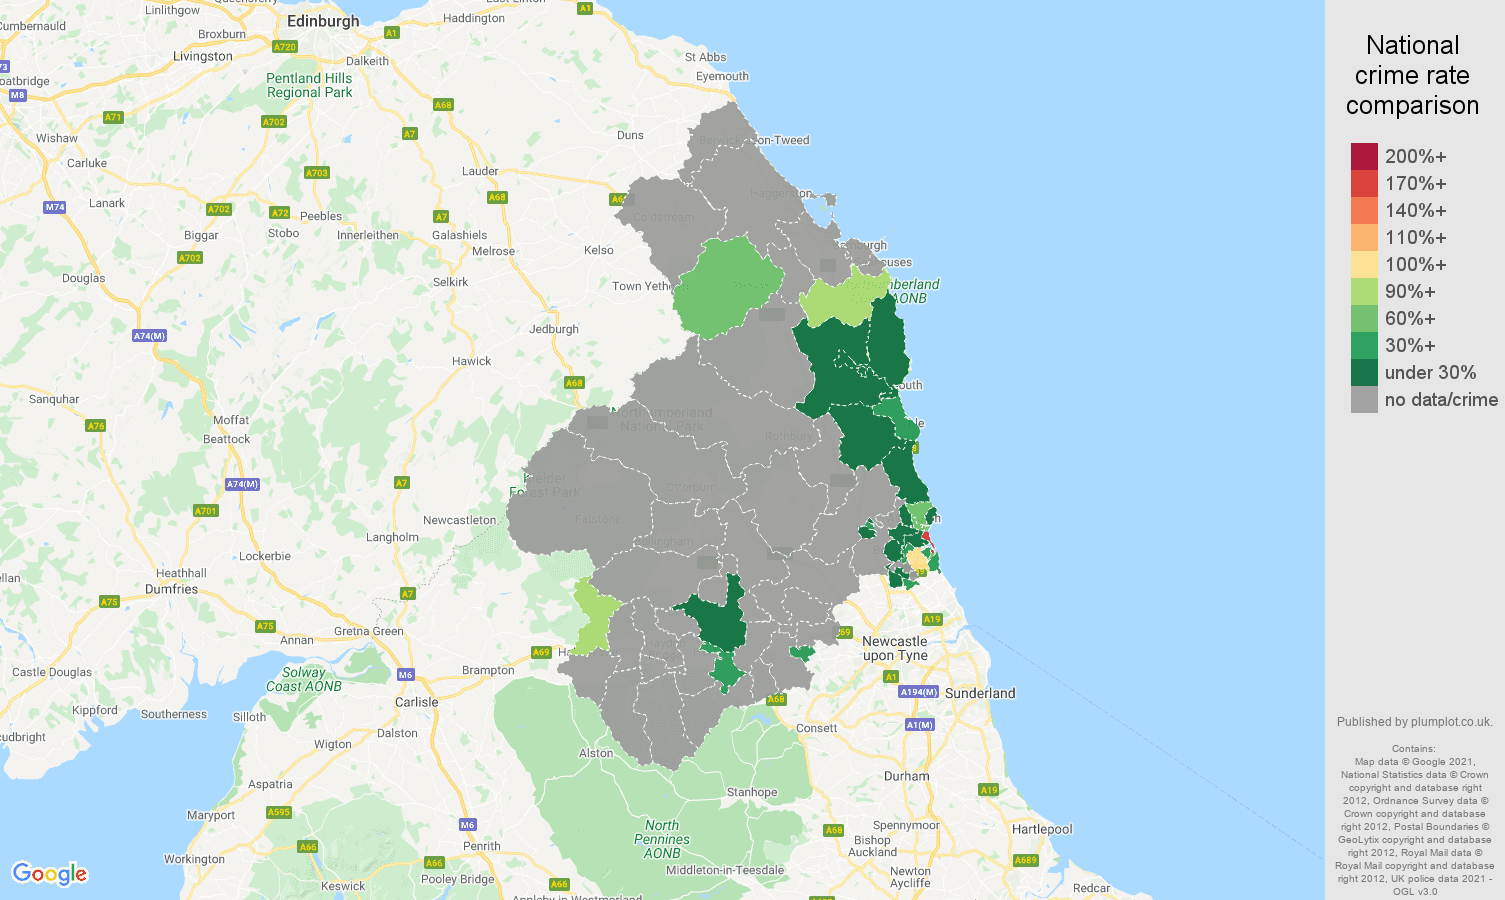 Northumberland bicycle theft crime rate comparison map